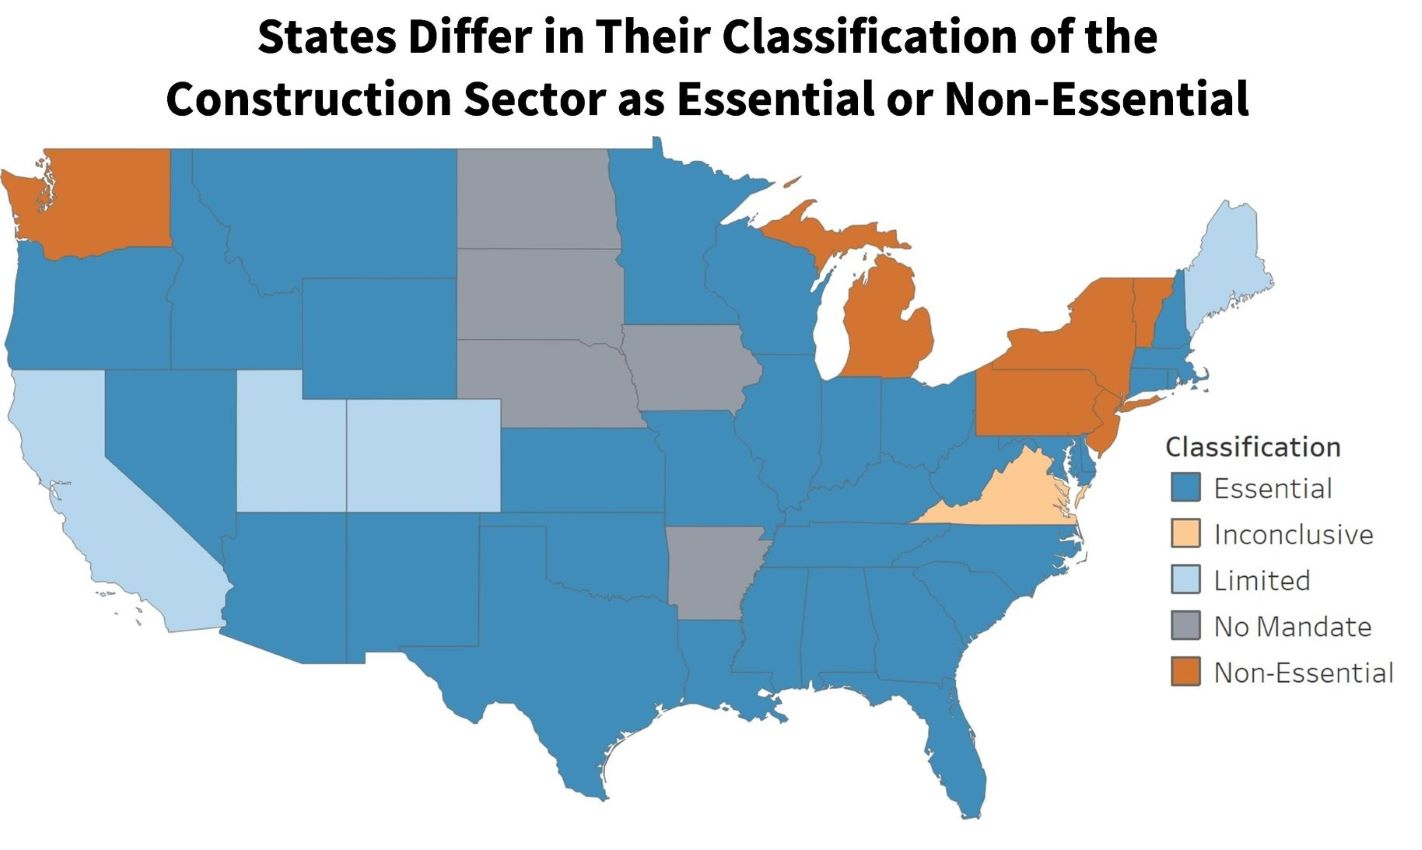 States Differ in Their Classification of the Construction Sector as Essential or Non-Essential